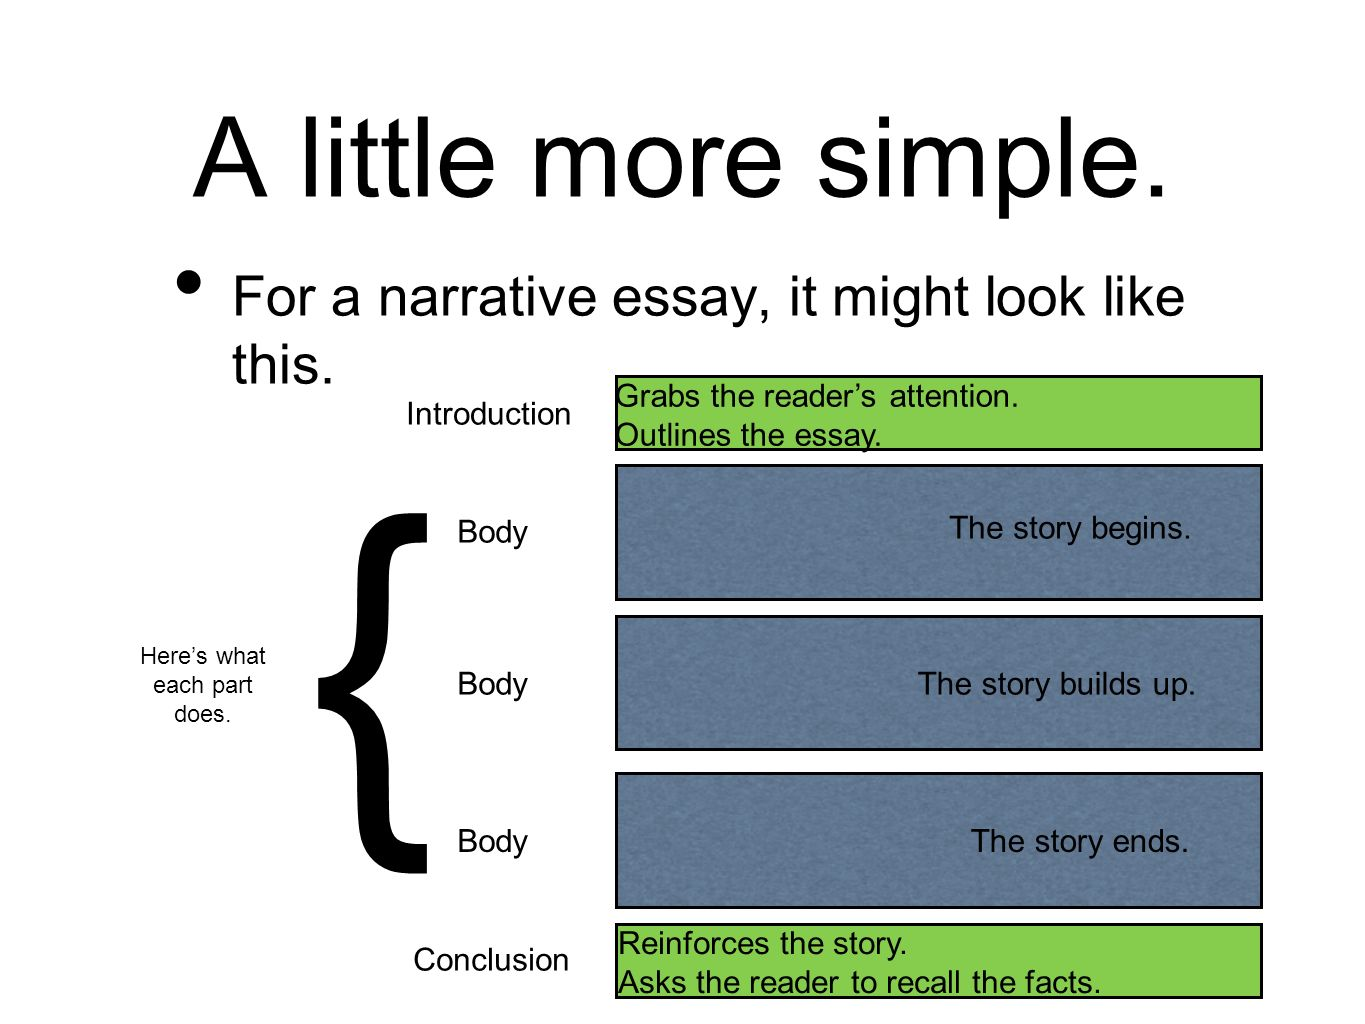 What Should a Narrative Essay Format Look Like?